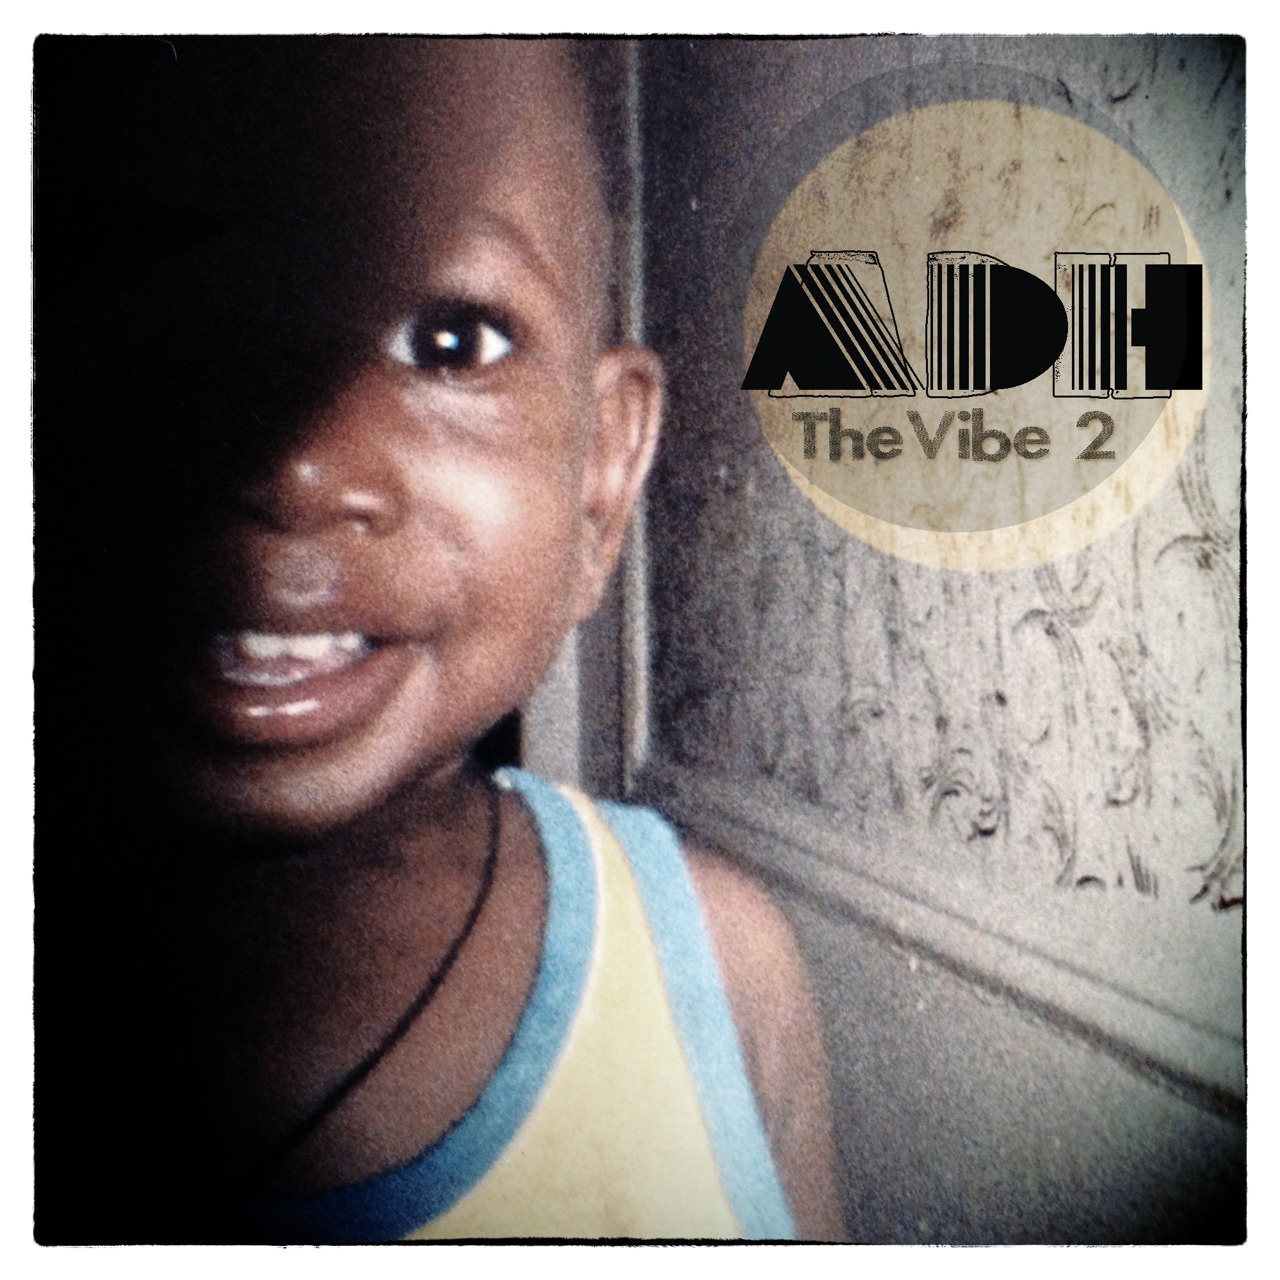 Stream TheVibe 2 here—->  https://soundcloud.com/adhonline/sets/adh-the-vibe-2   2LV